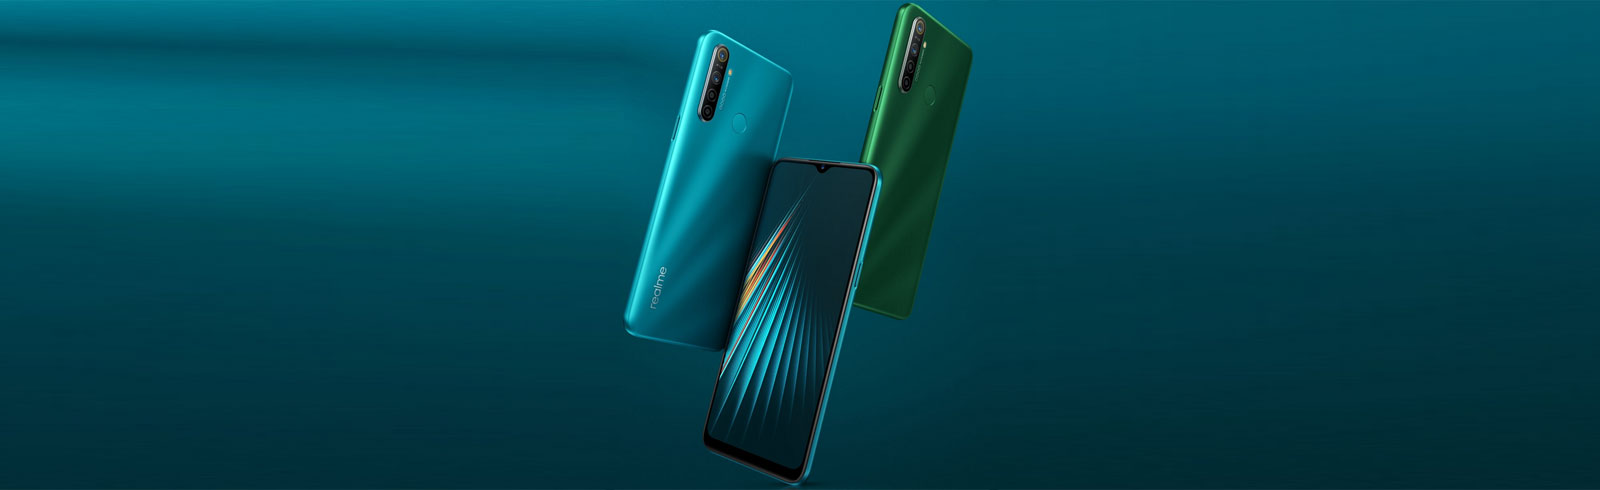 Realme 5i goes official in India, is the same as Realme 5